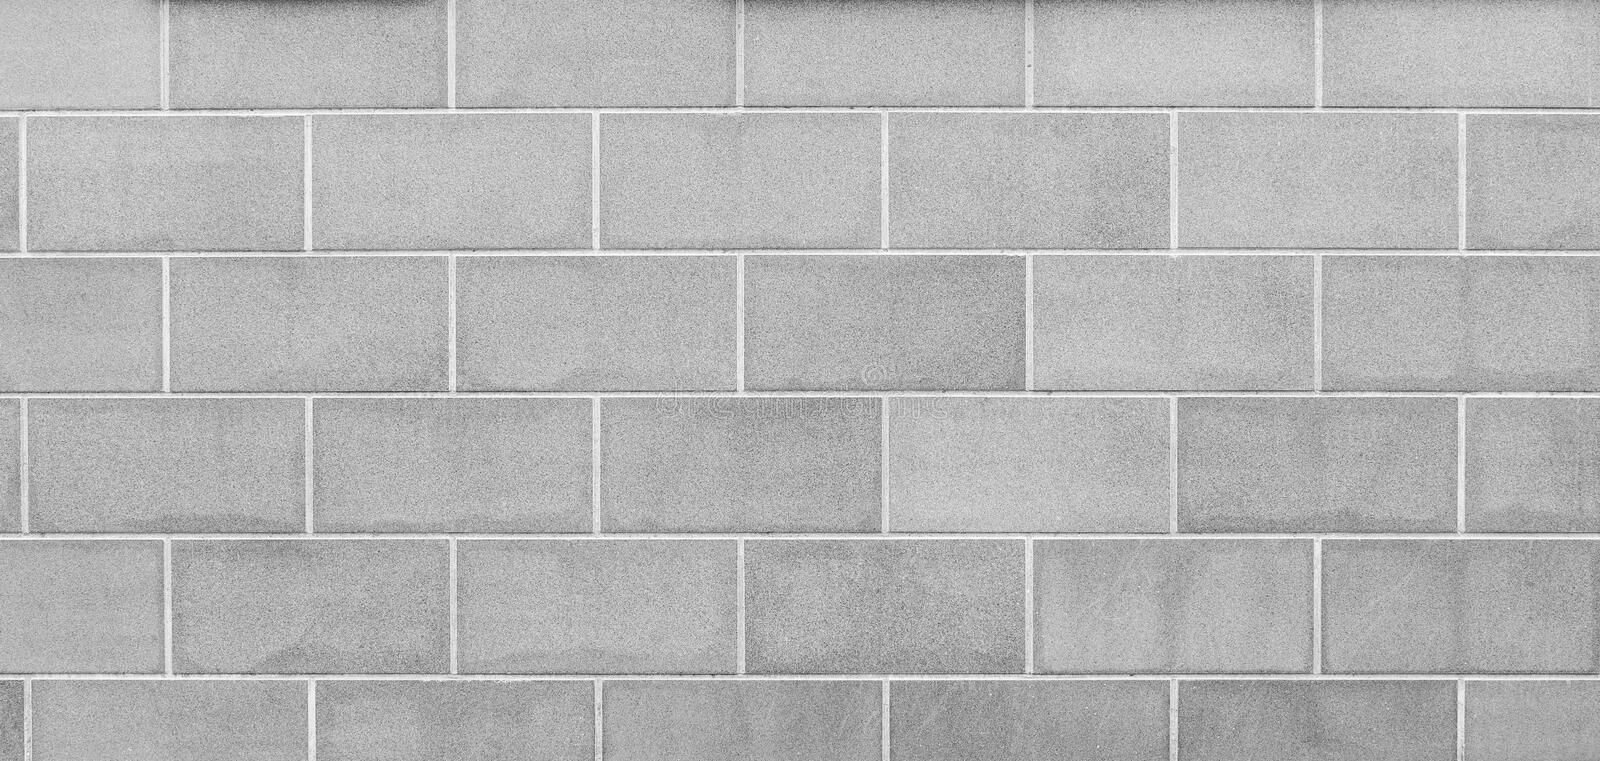 Modern light gray slab wall background. High resolution full frame background of a new, modern and clean wall or building exterior made of stone slabs in black royalty free stock photography